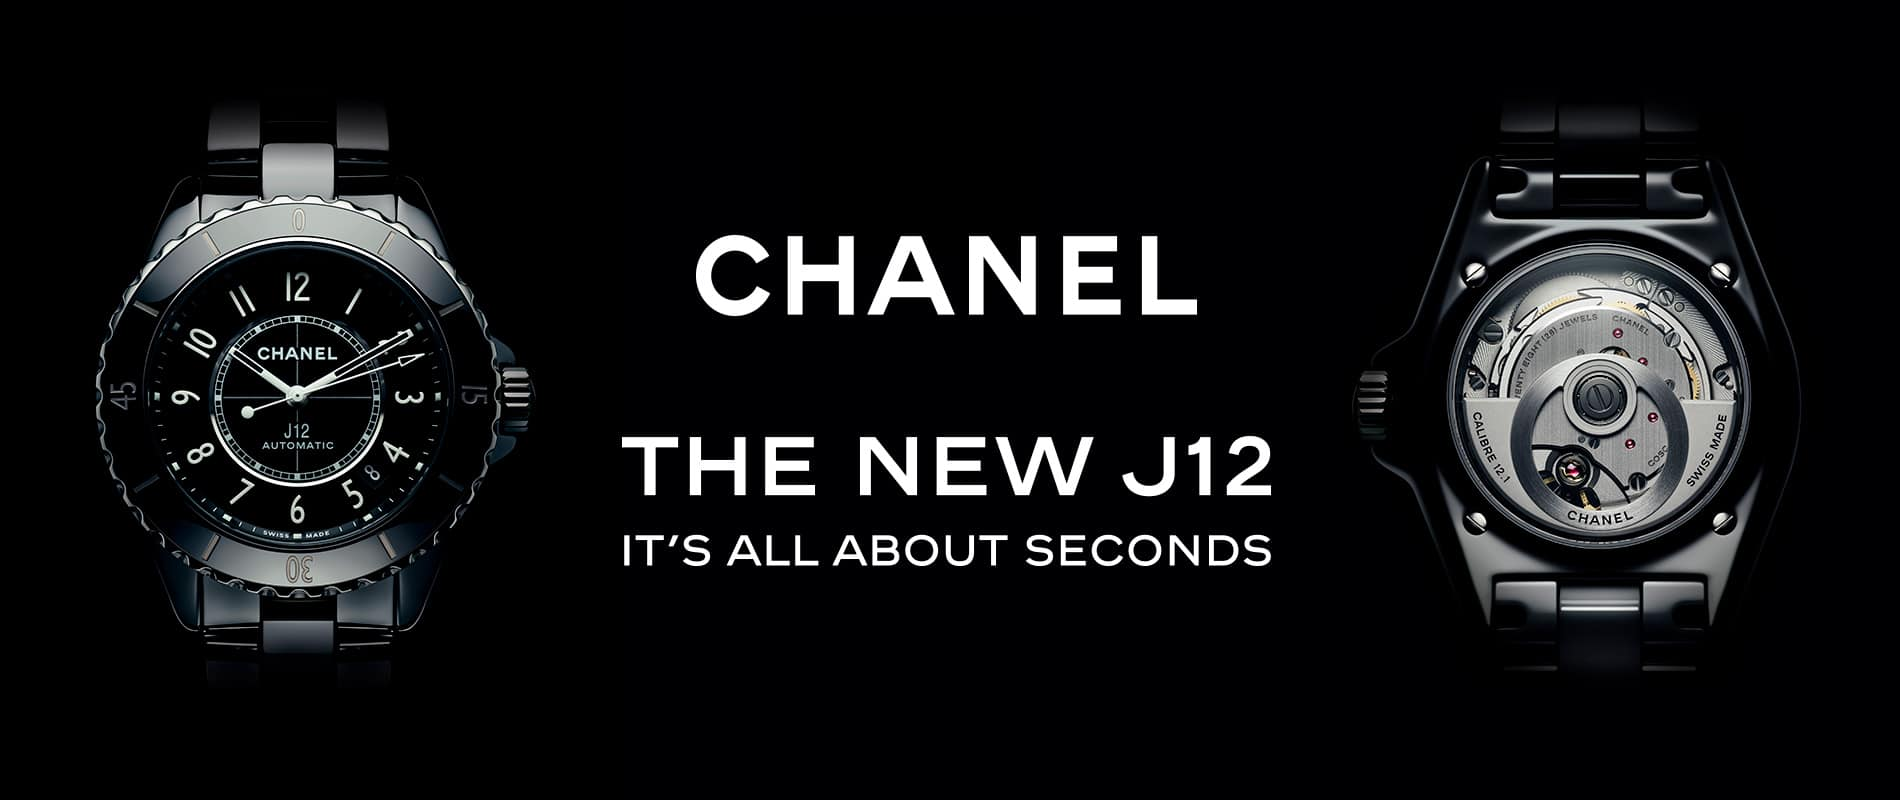 Chanel The New J12